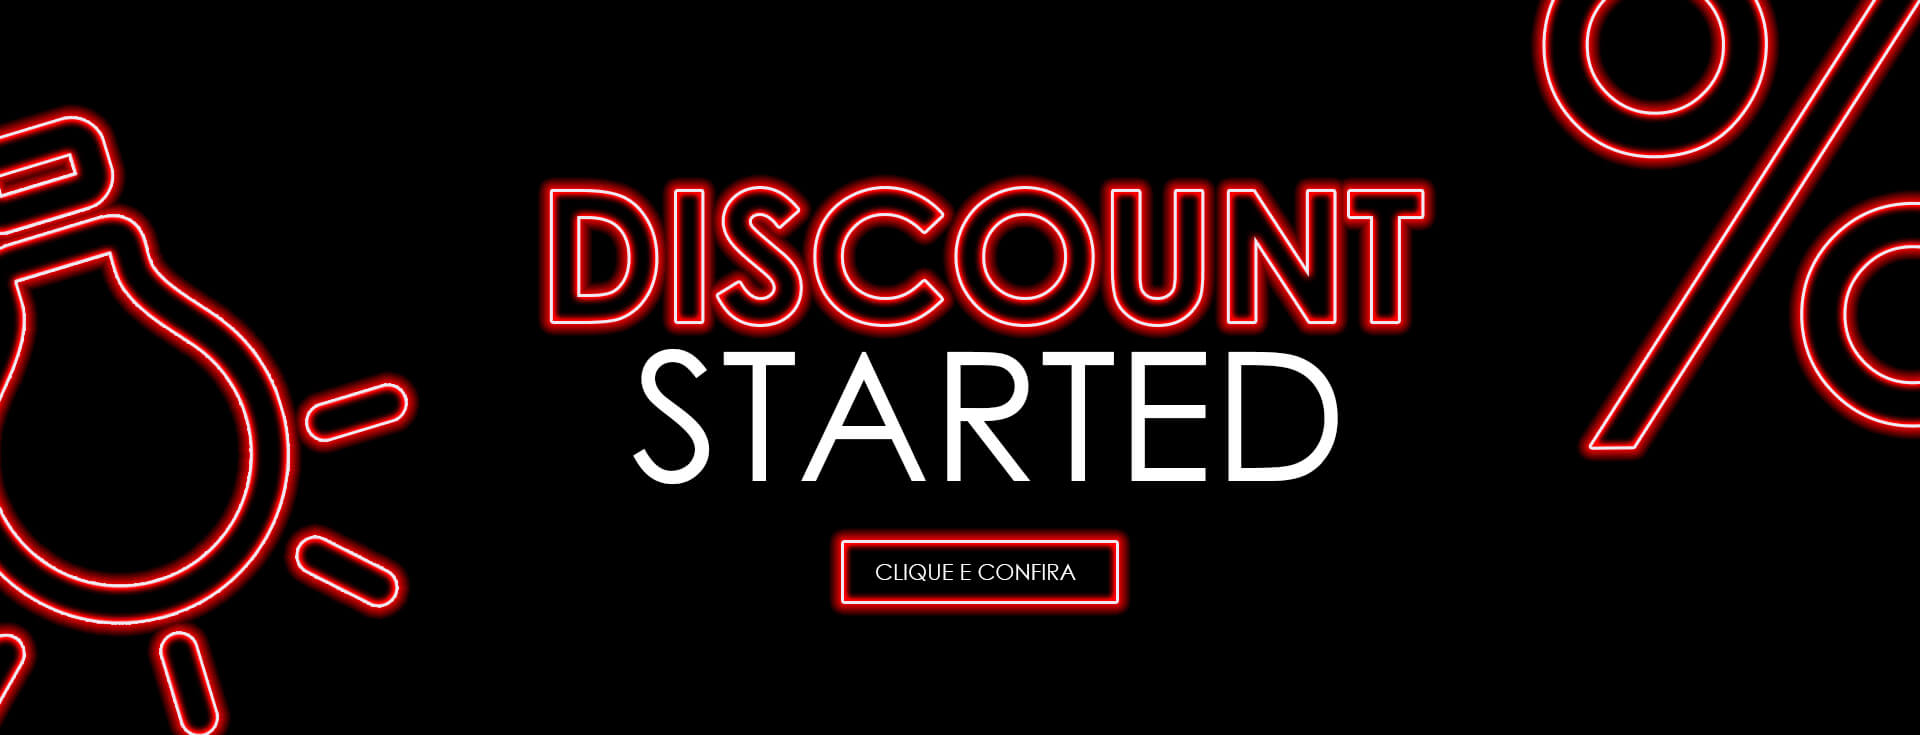 Discount Started